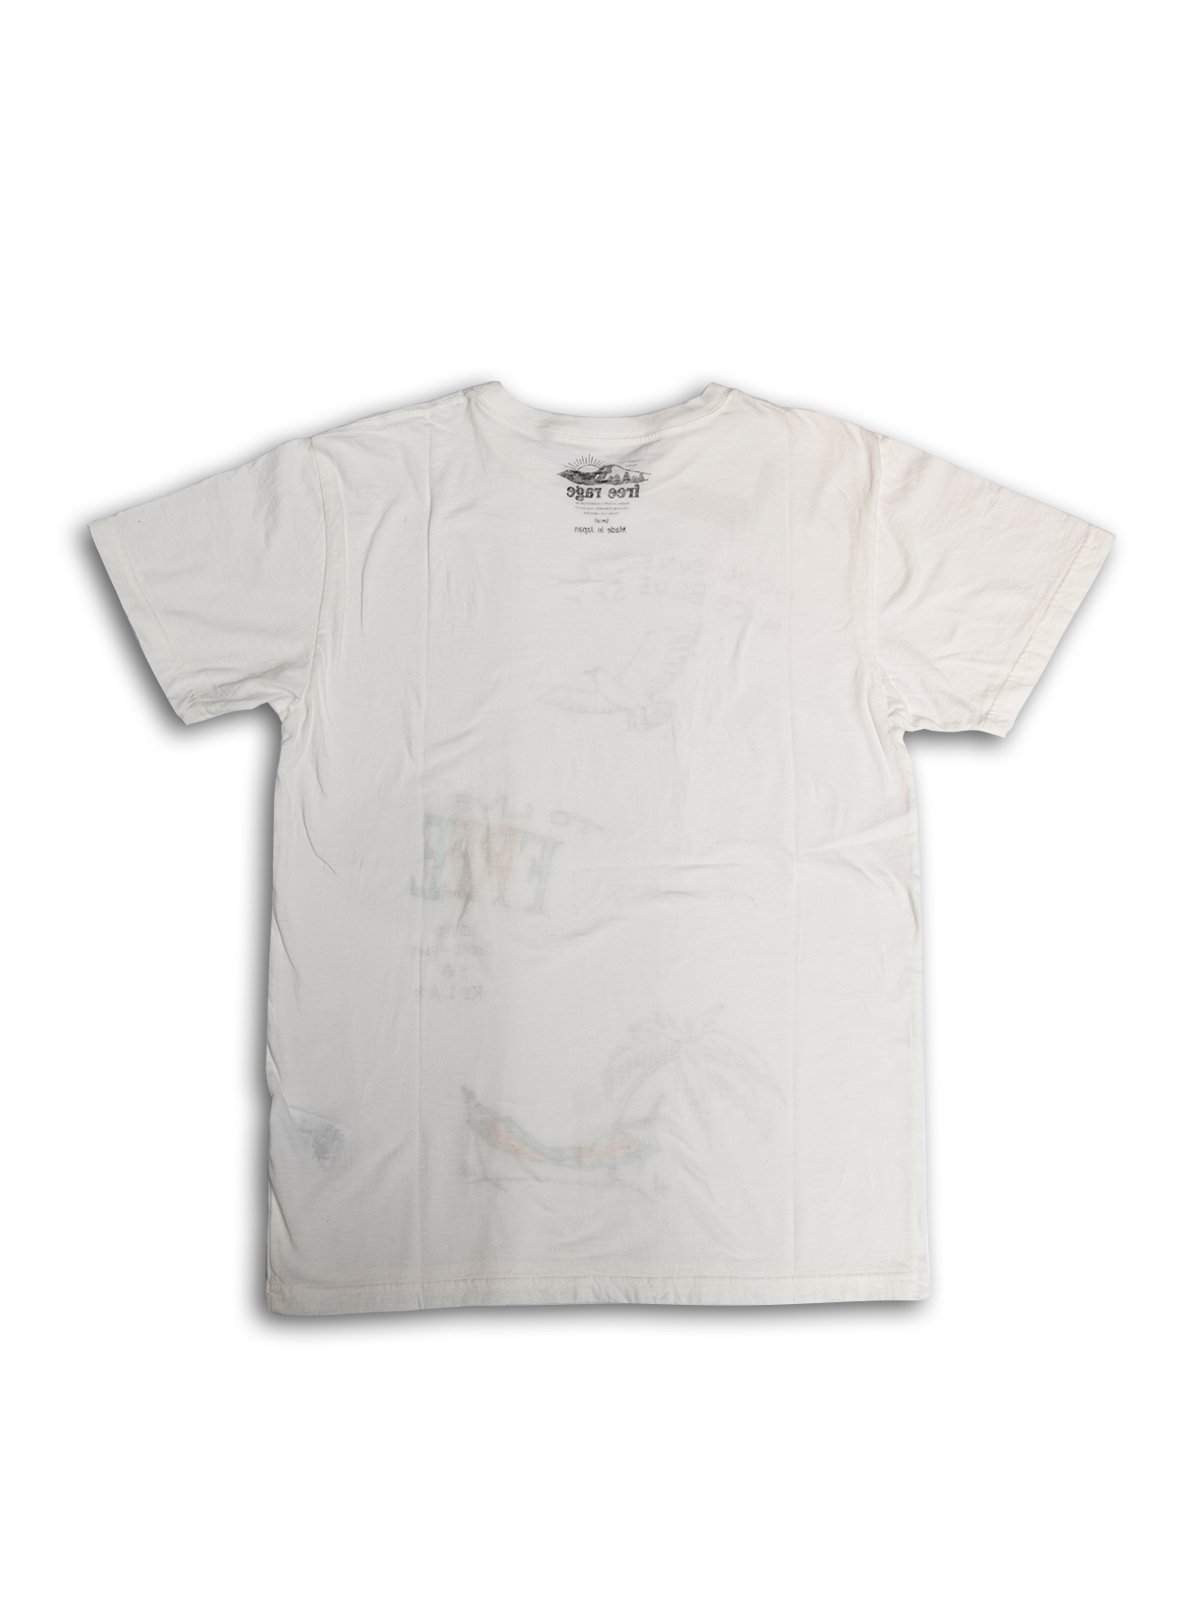 Free Rage Recycled Cotton Tee Hand Paint Live Free White - MORE by Morello Indonesia